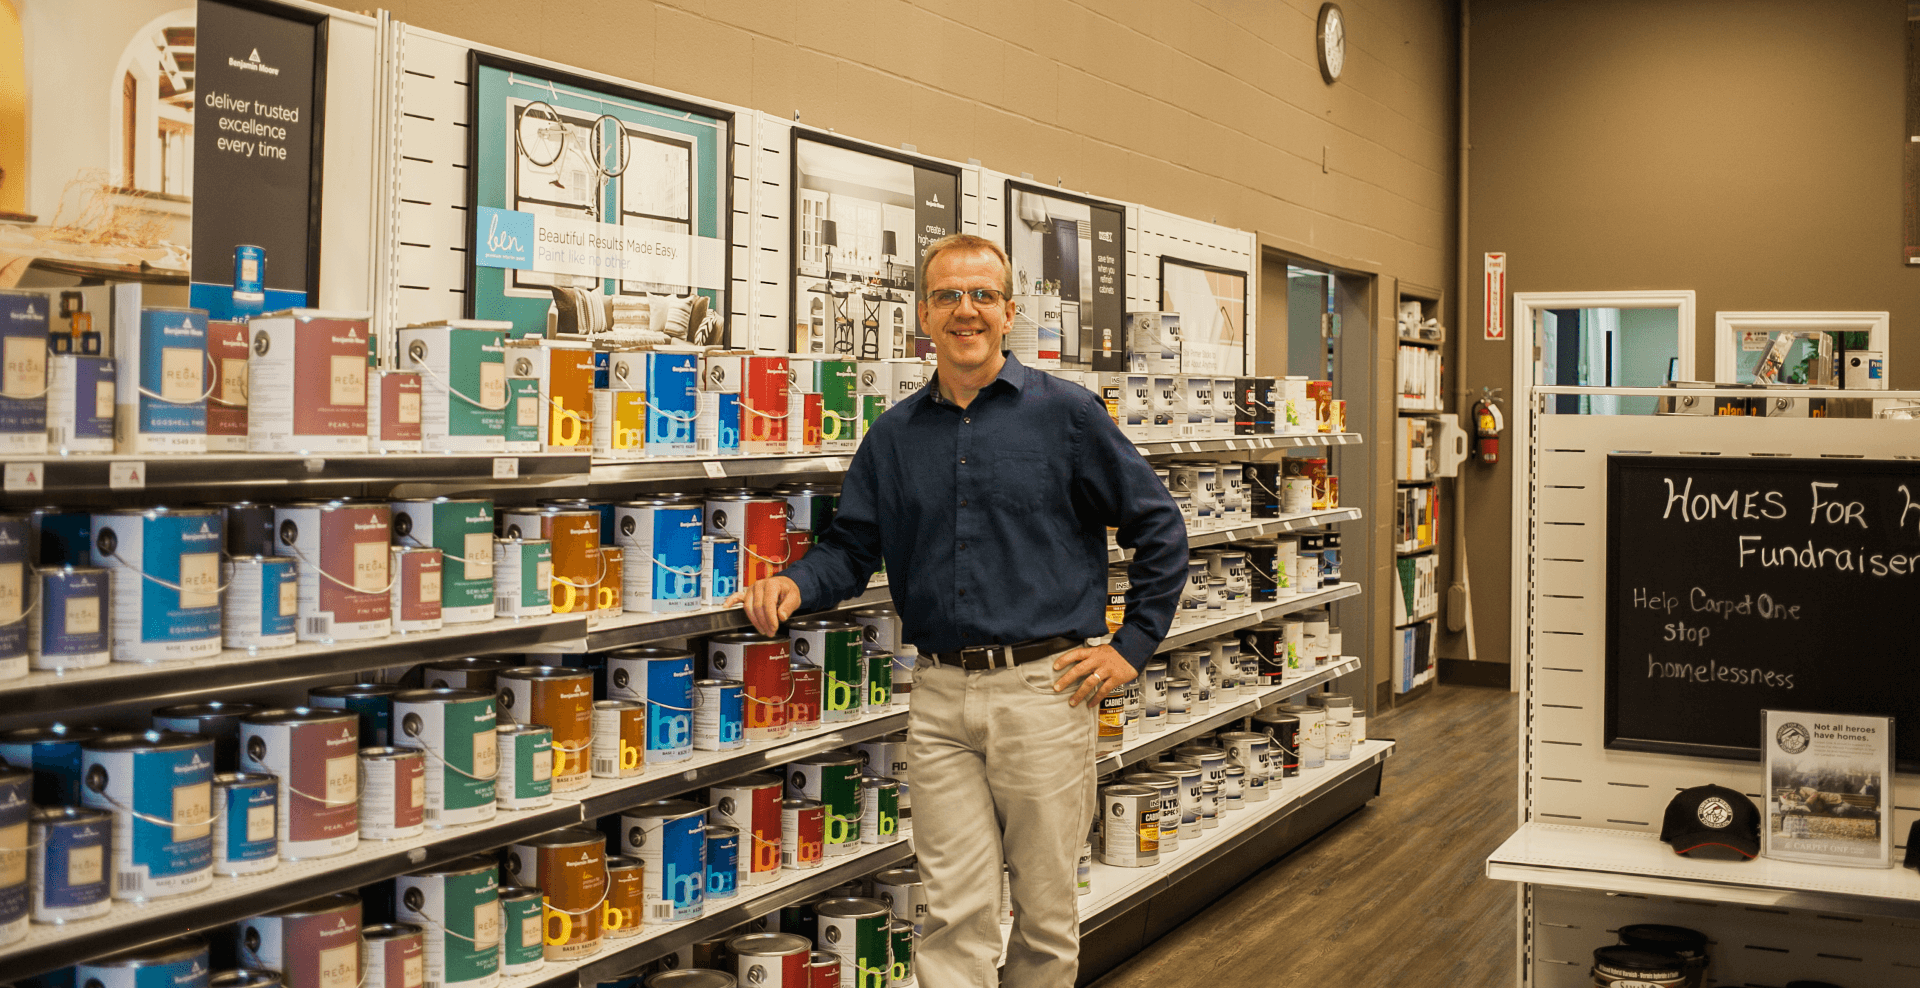 owner standing by paint cans